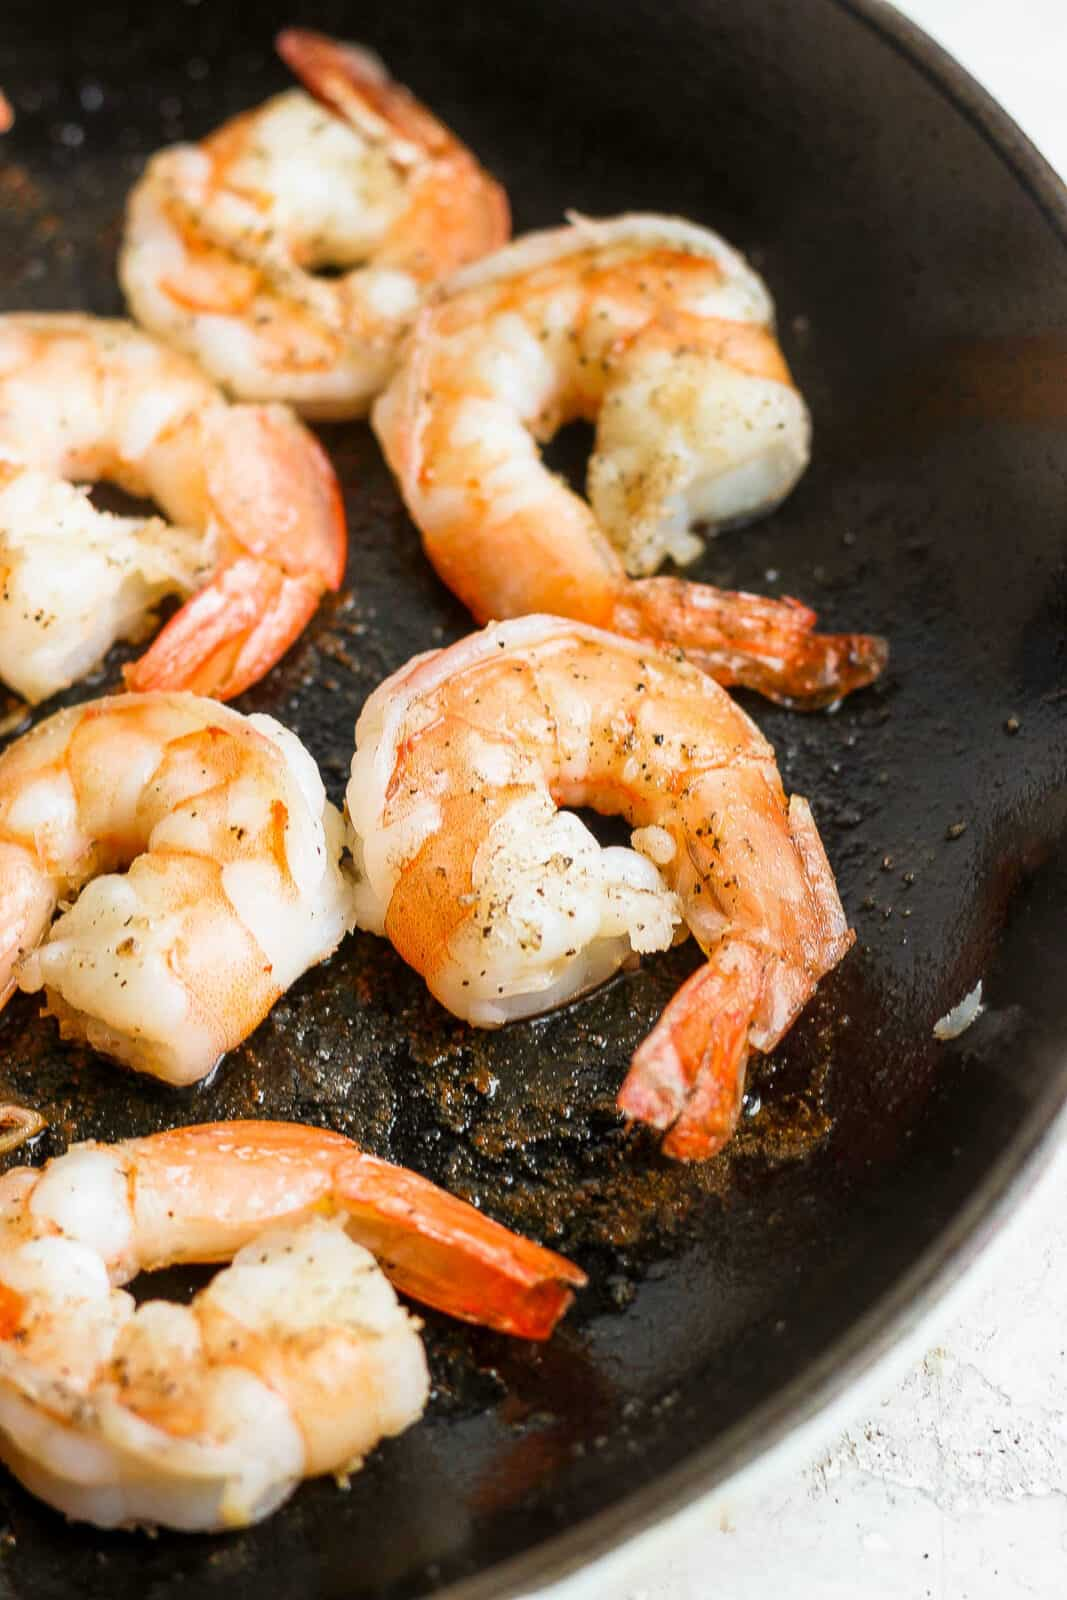 Shrimp being cooked in a cast iron skillet.